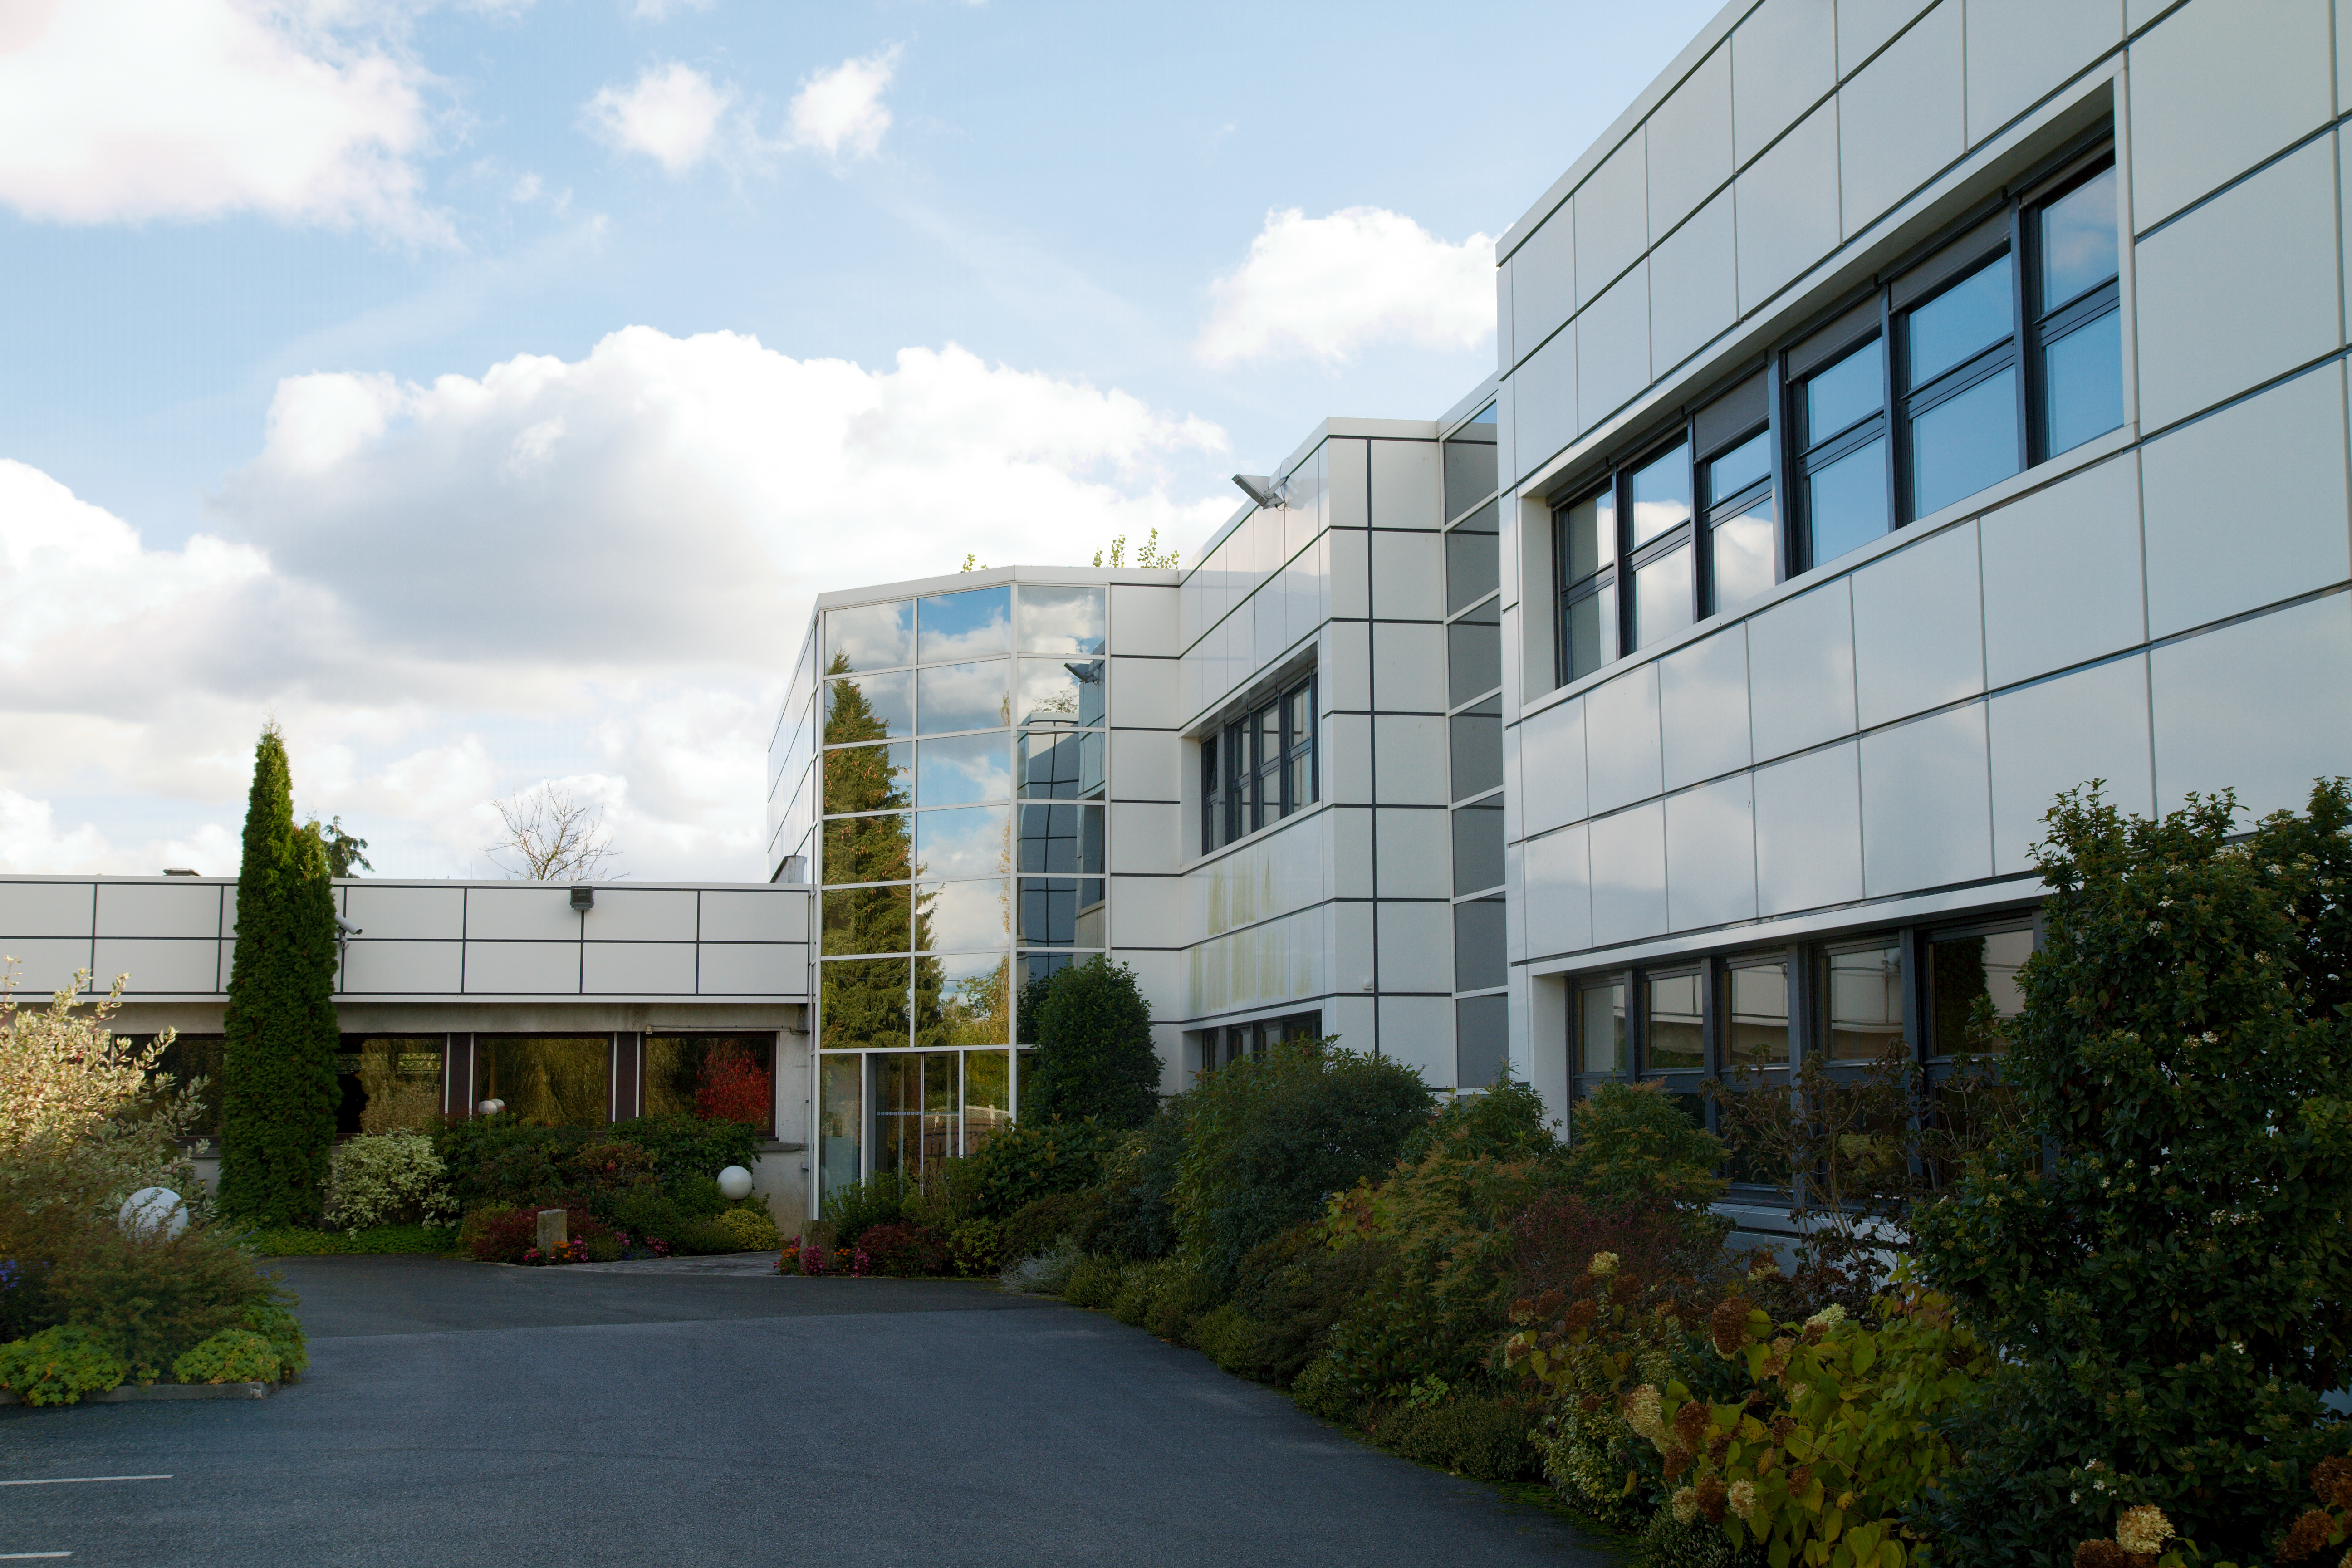 tebu-bio premises (Le Perray-en-Yvelines, France)